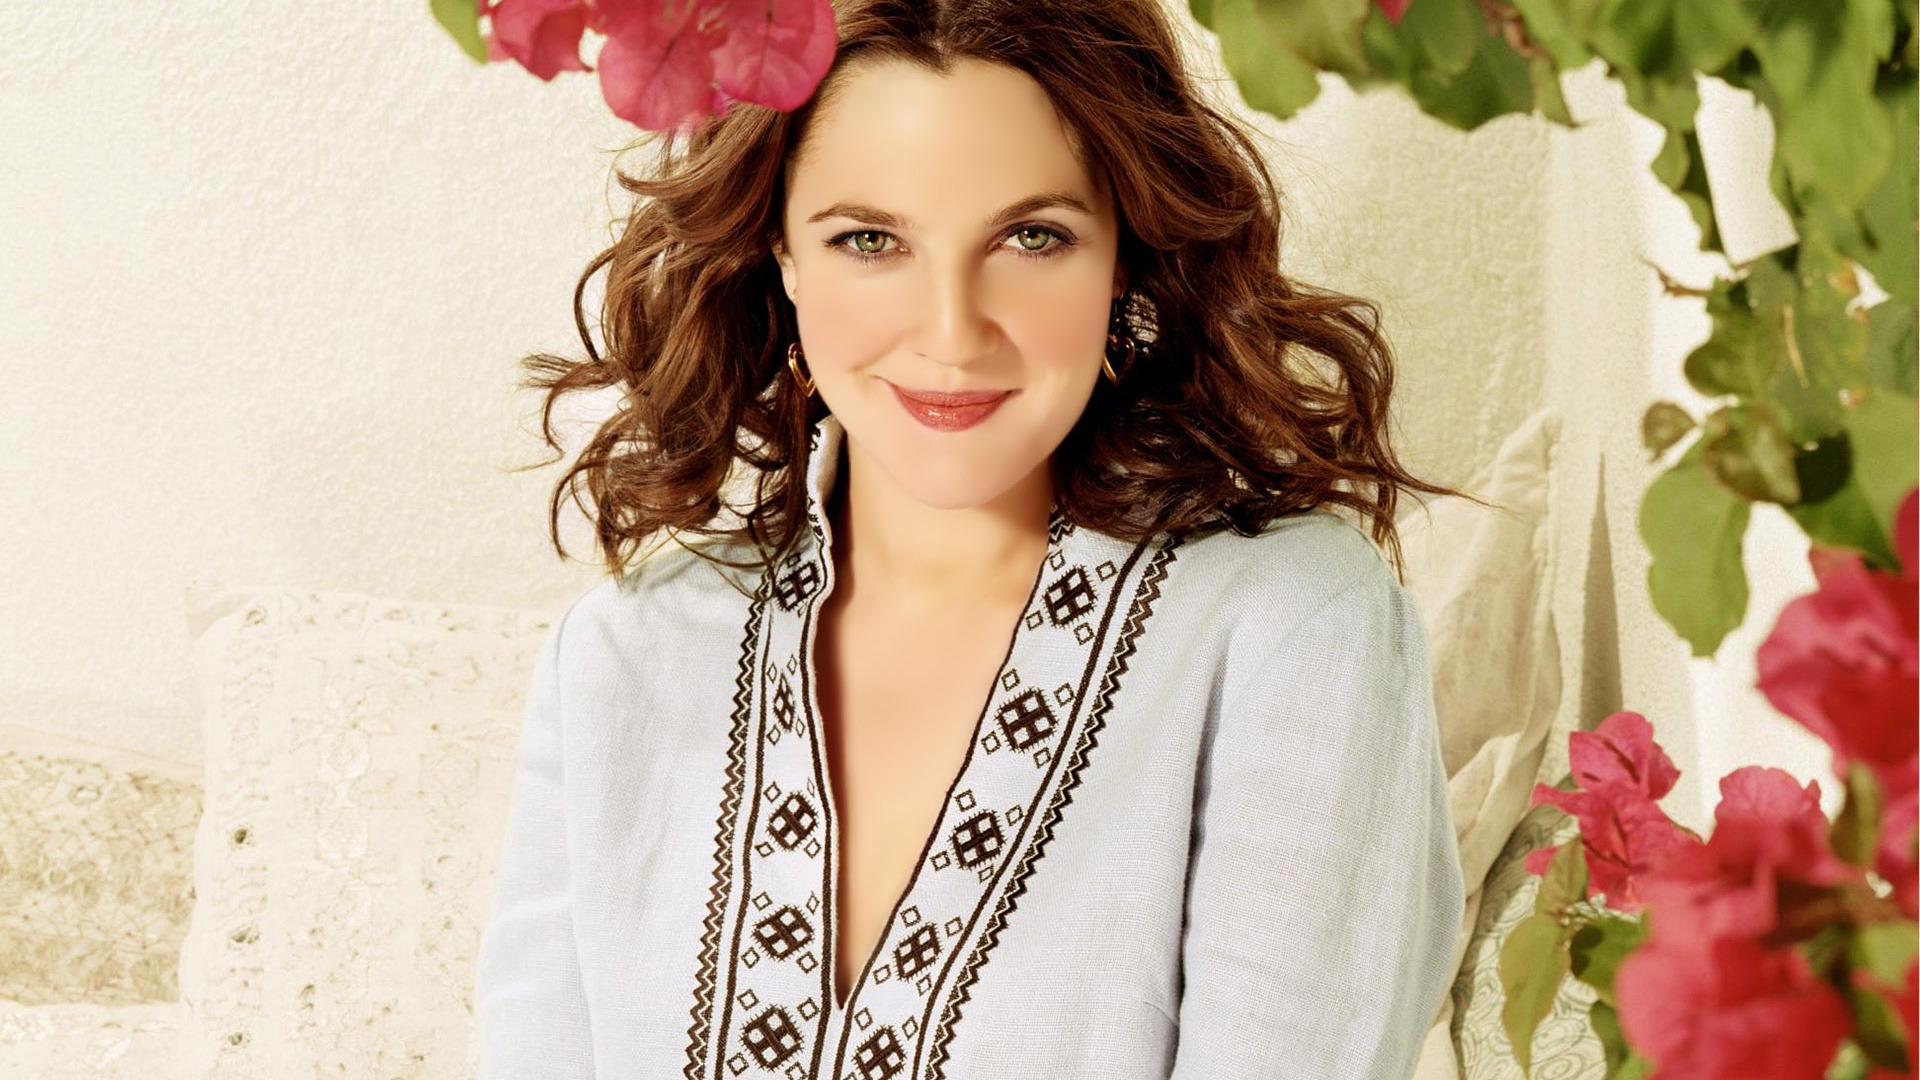 The Beautiful Drew Barrymore Between The Red Flowers